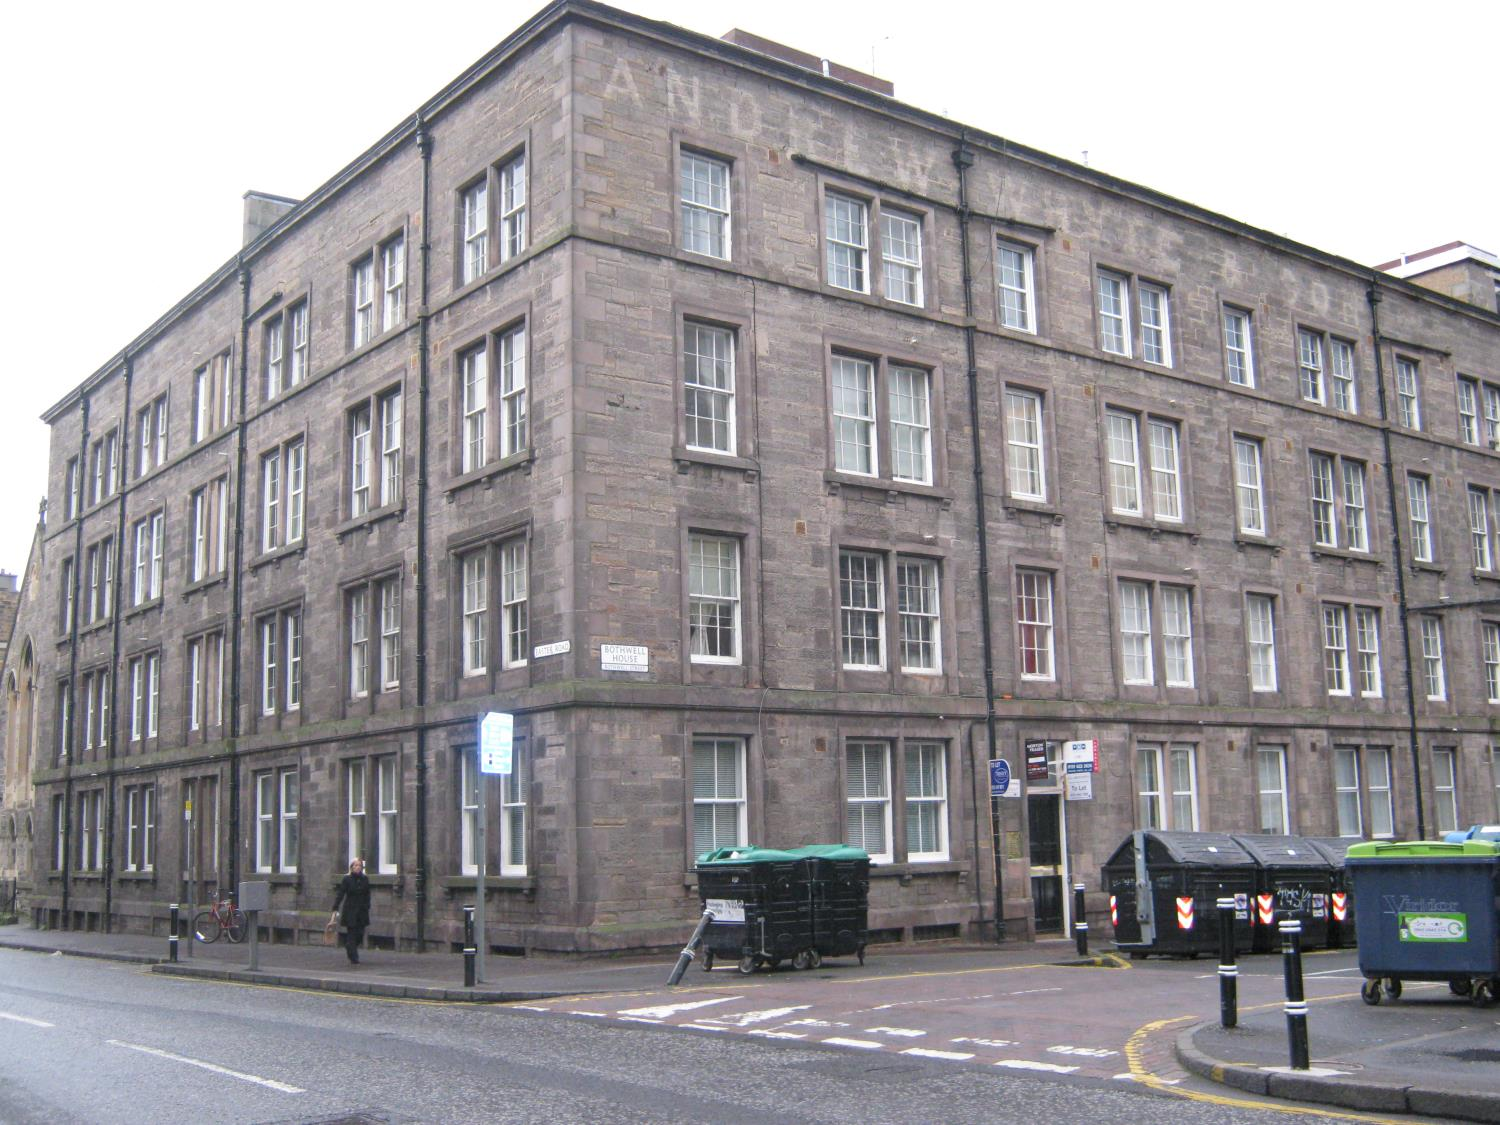 View property for rent Bothwell House, Edinburgh